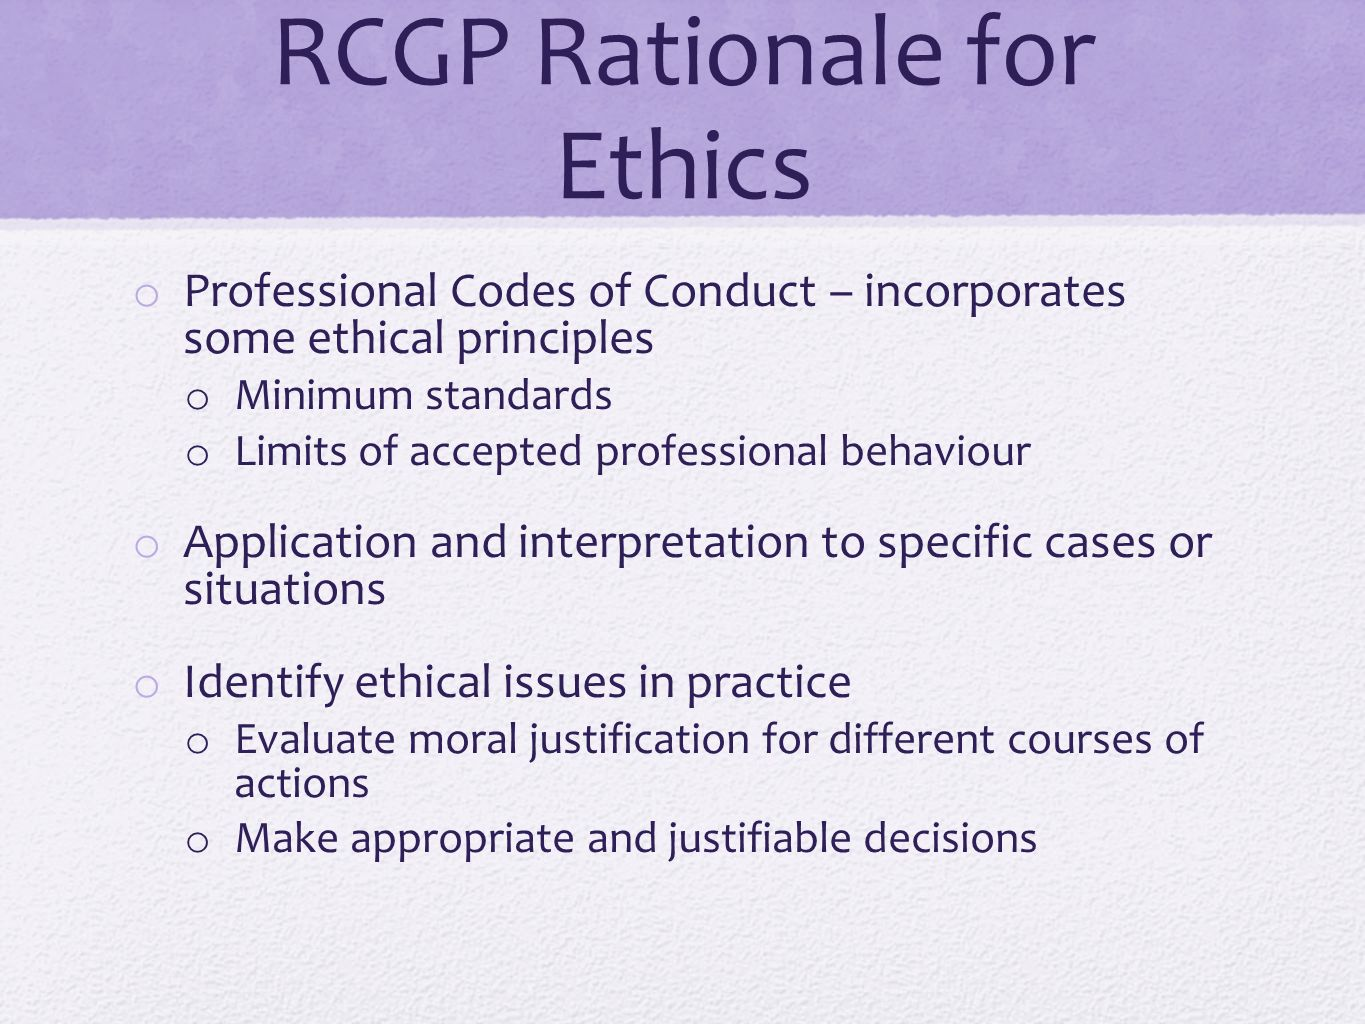 RCGP Rationale for Ethics